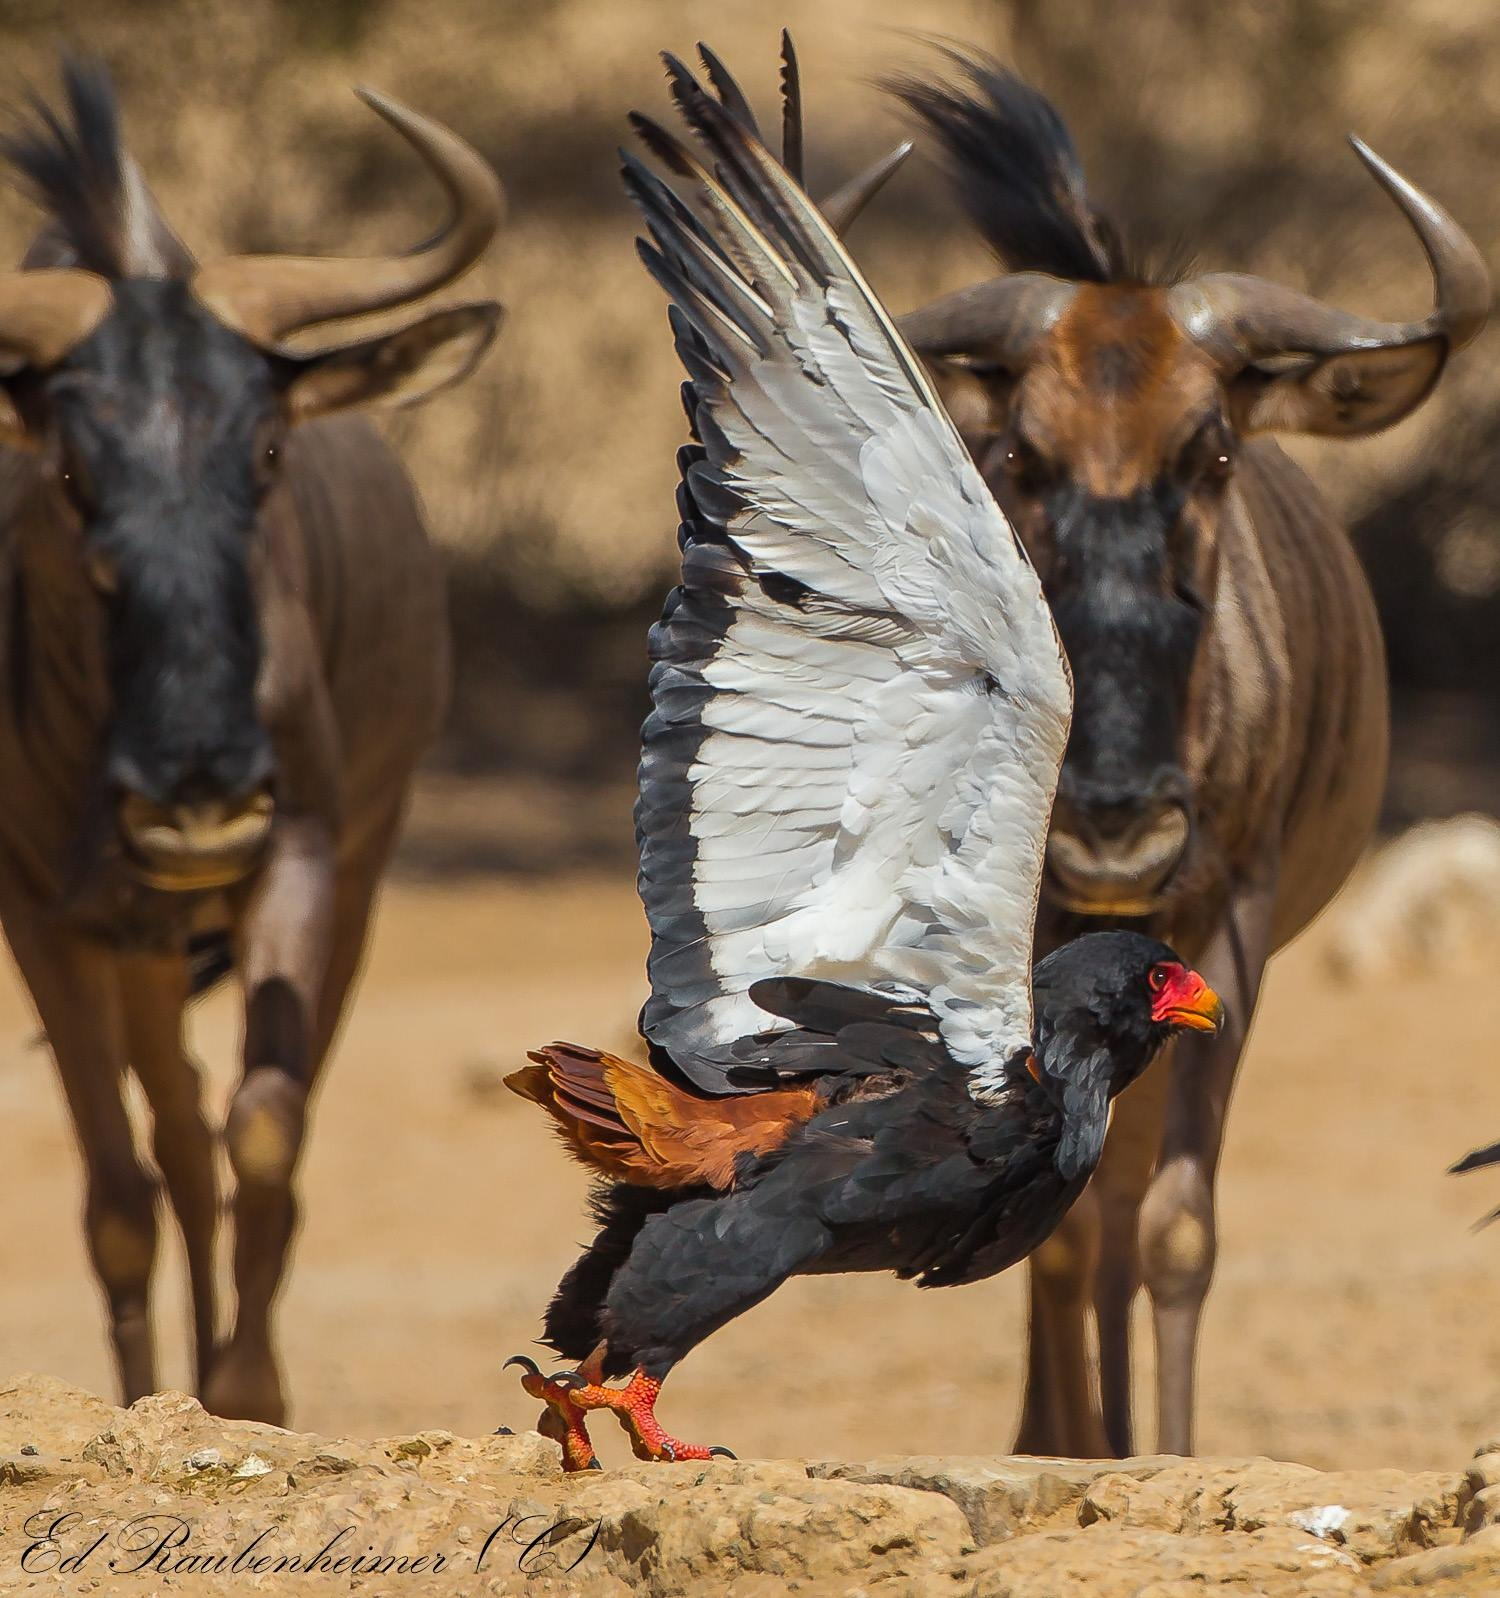 BATELEUR EAGLES DO NOT BACK DOWN. EVEN WITH TWO AGAINST ONE THIS BIRD DOES NOT LOOK WORRIED. IMAGE: © ED RAUBINHEIMER